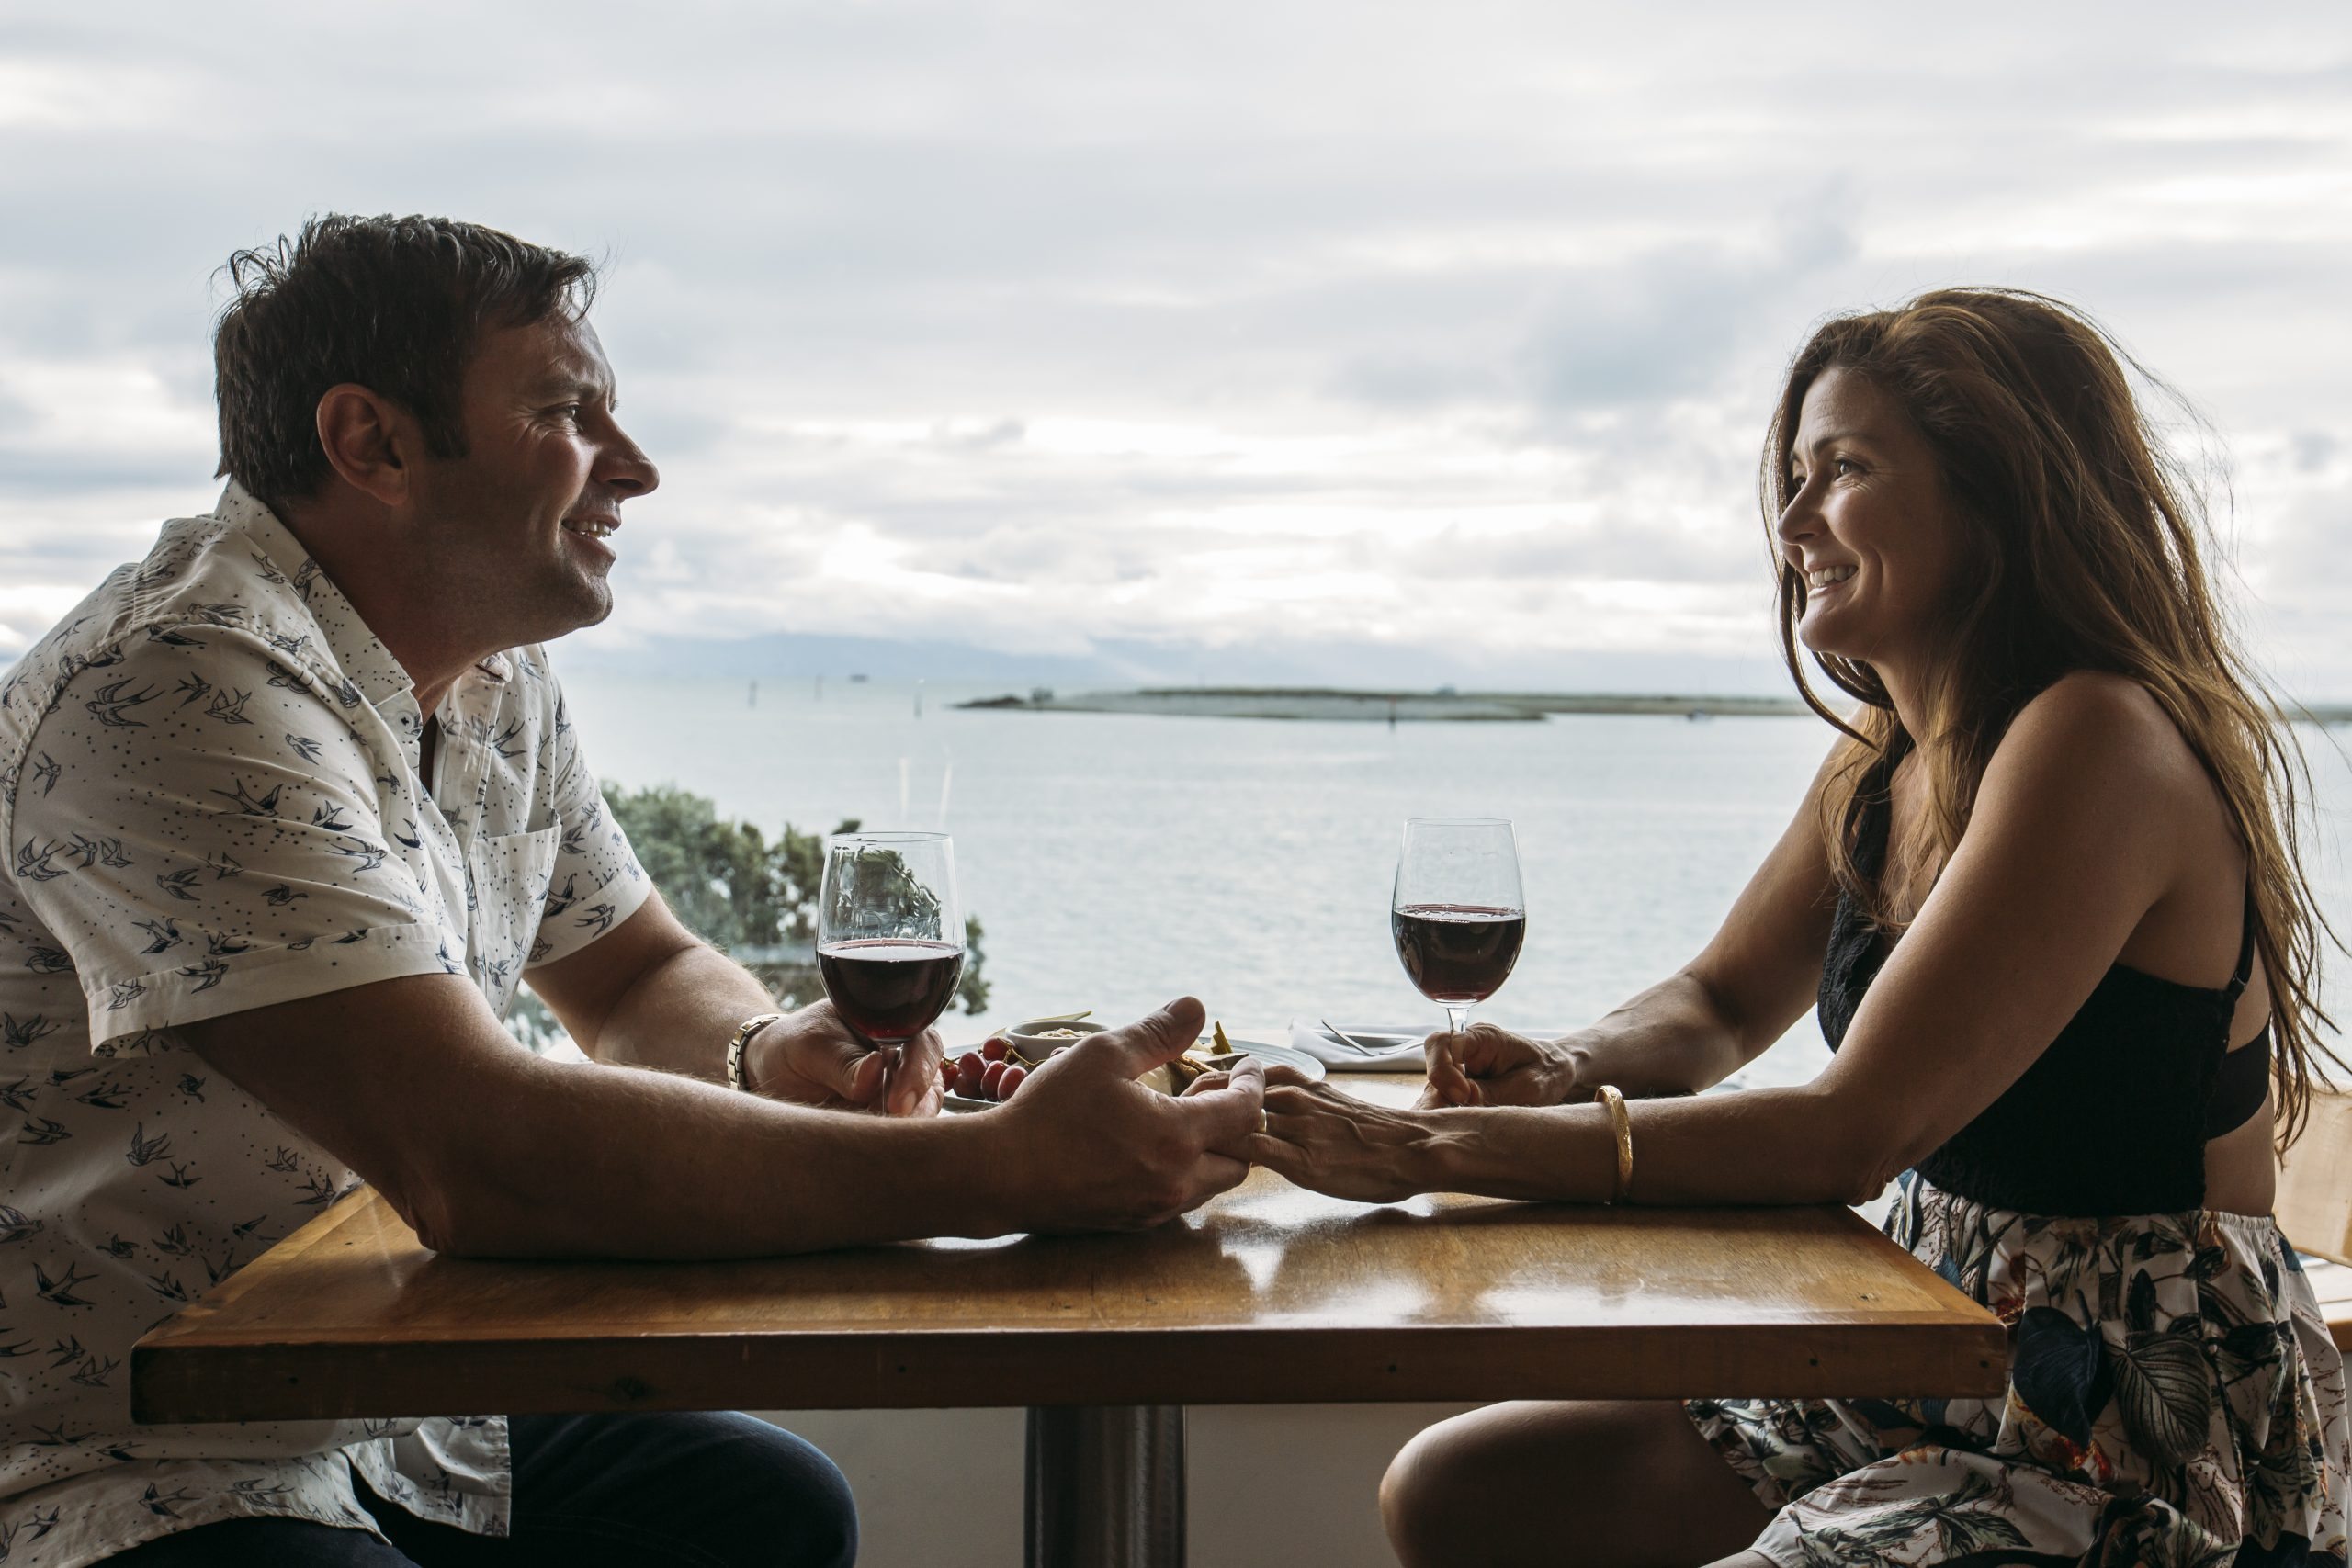 You are currently viewing Nelson is the perfect place for a romantic luxury escape says the award-winning luxury South Island motel, Century Park Motor Lodge